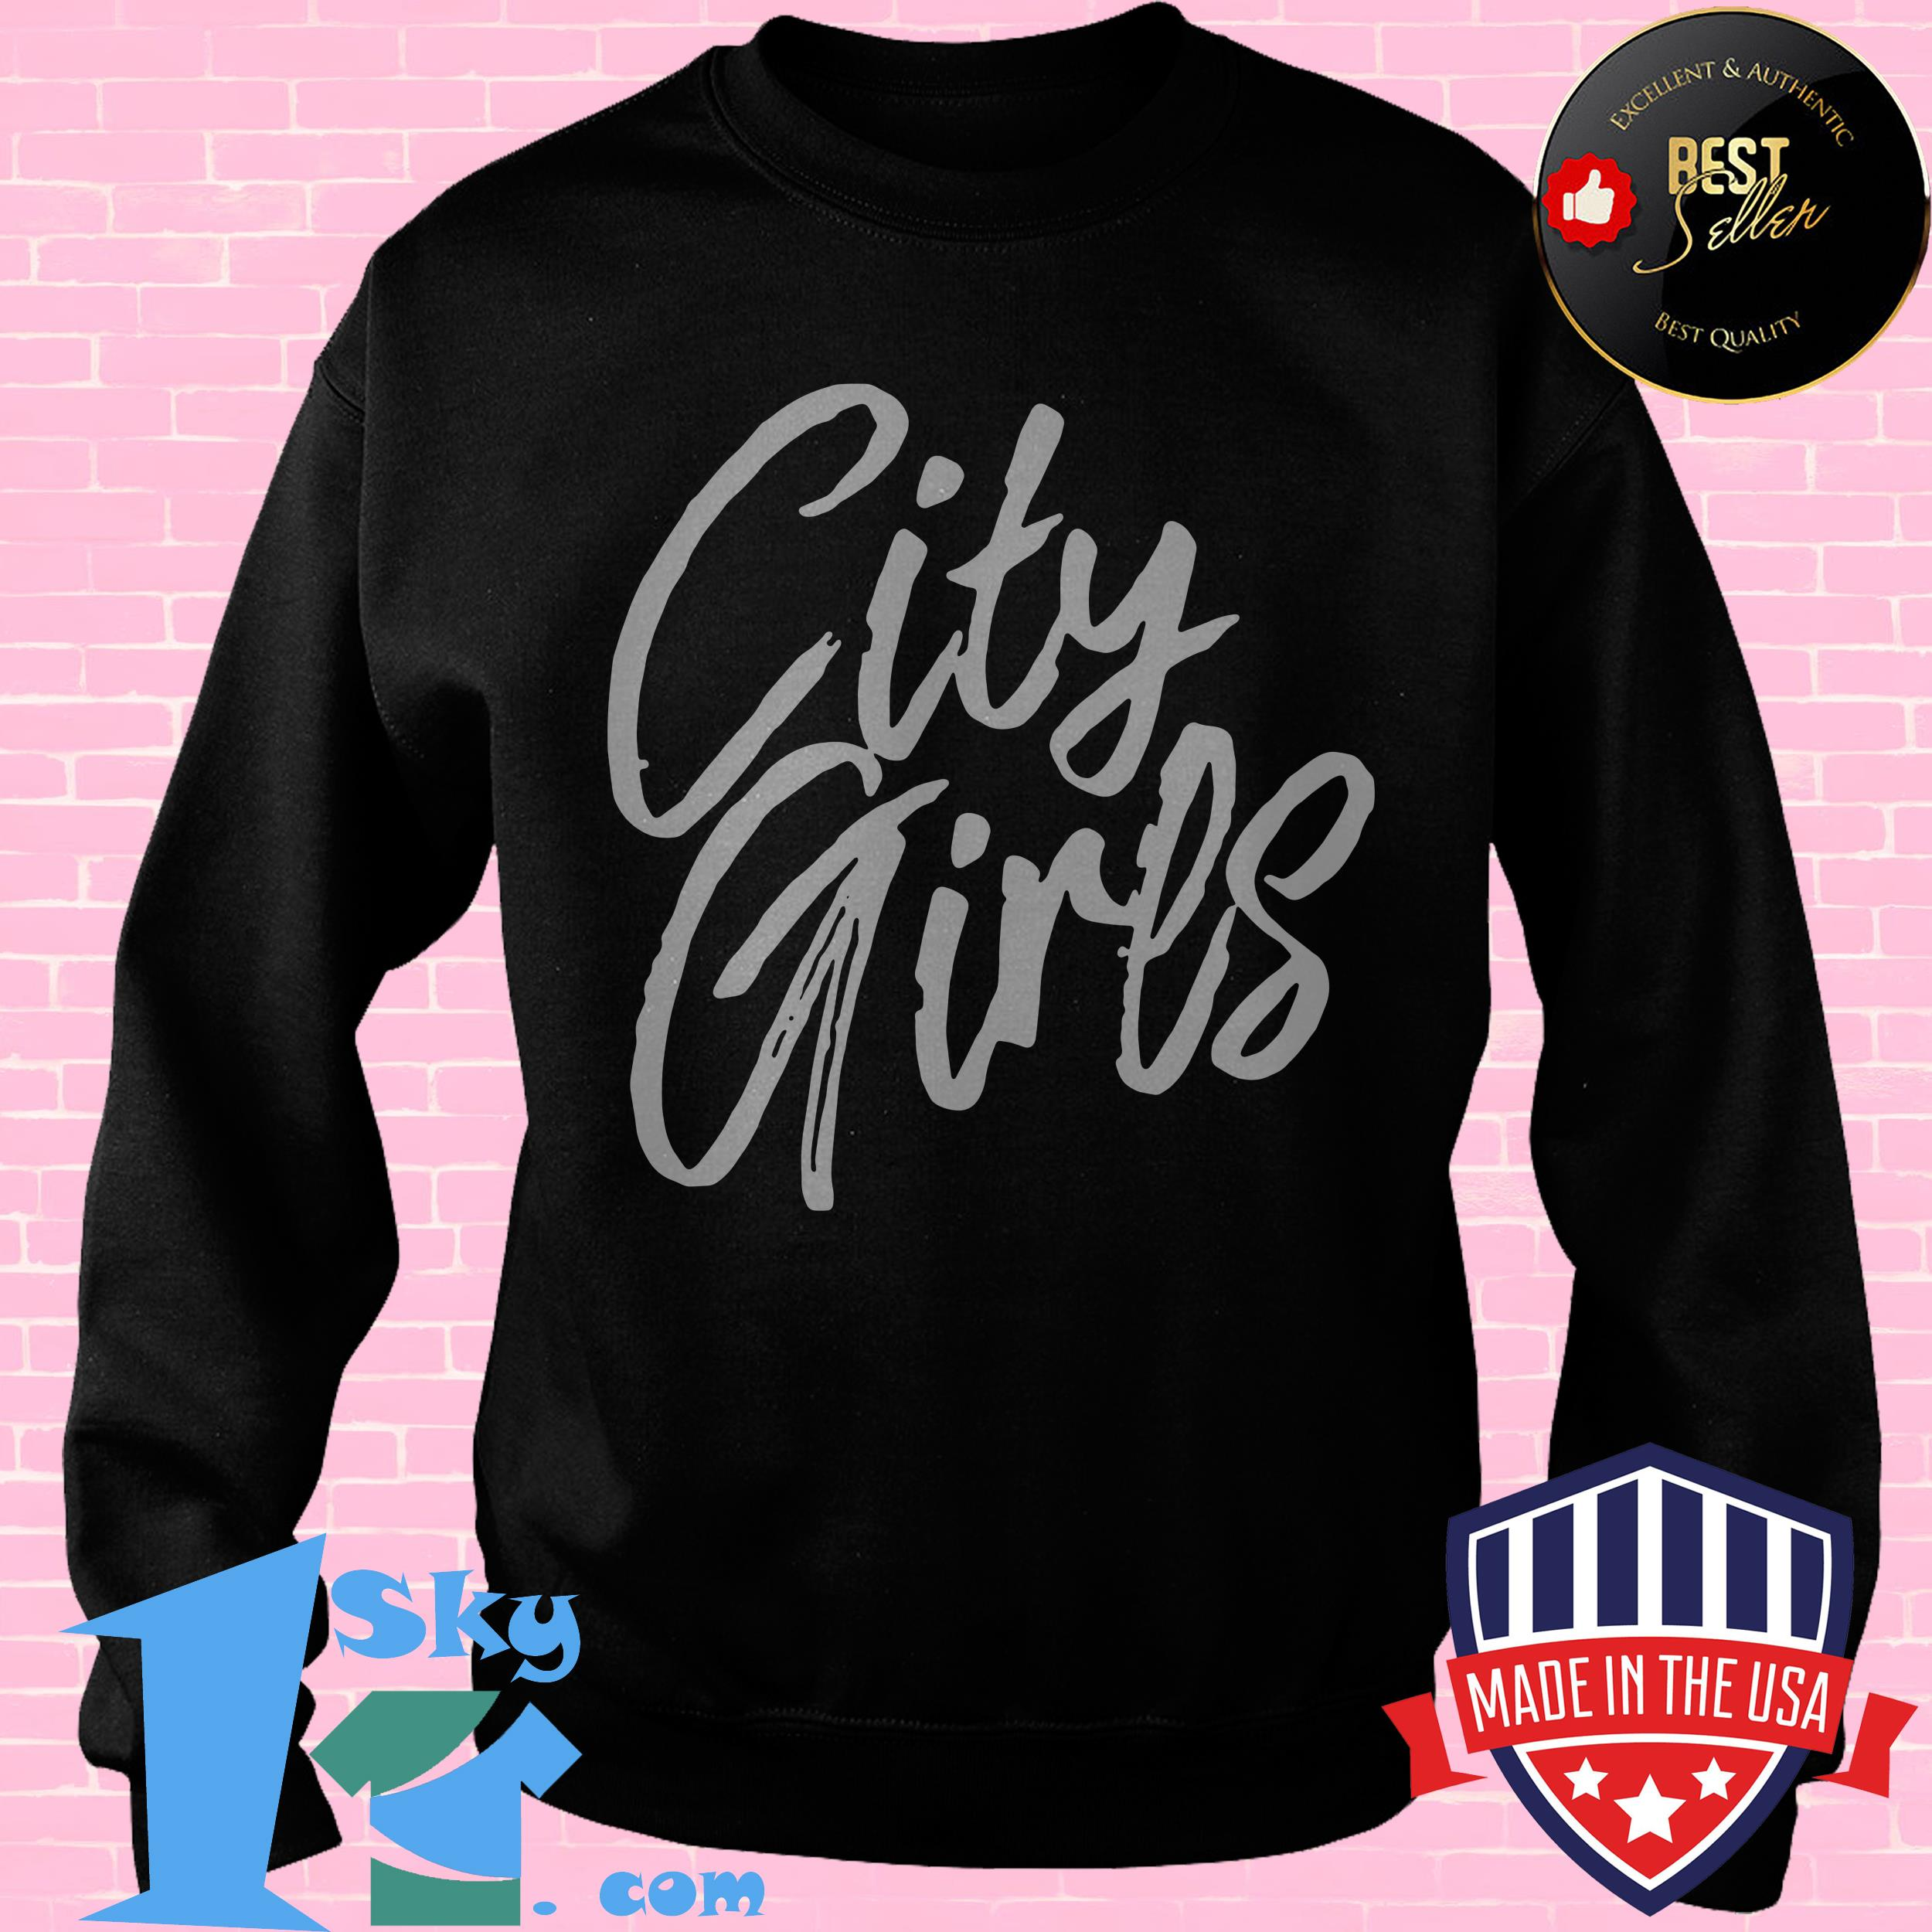 official city girls sorella sweatshirt - Official City Girls Sorella Shirt